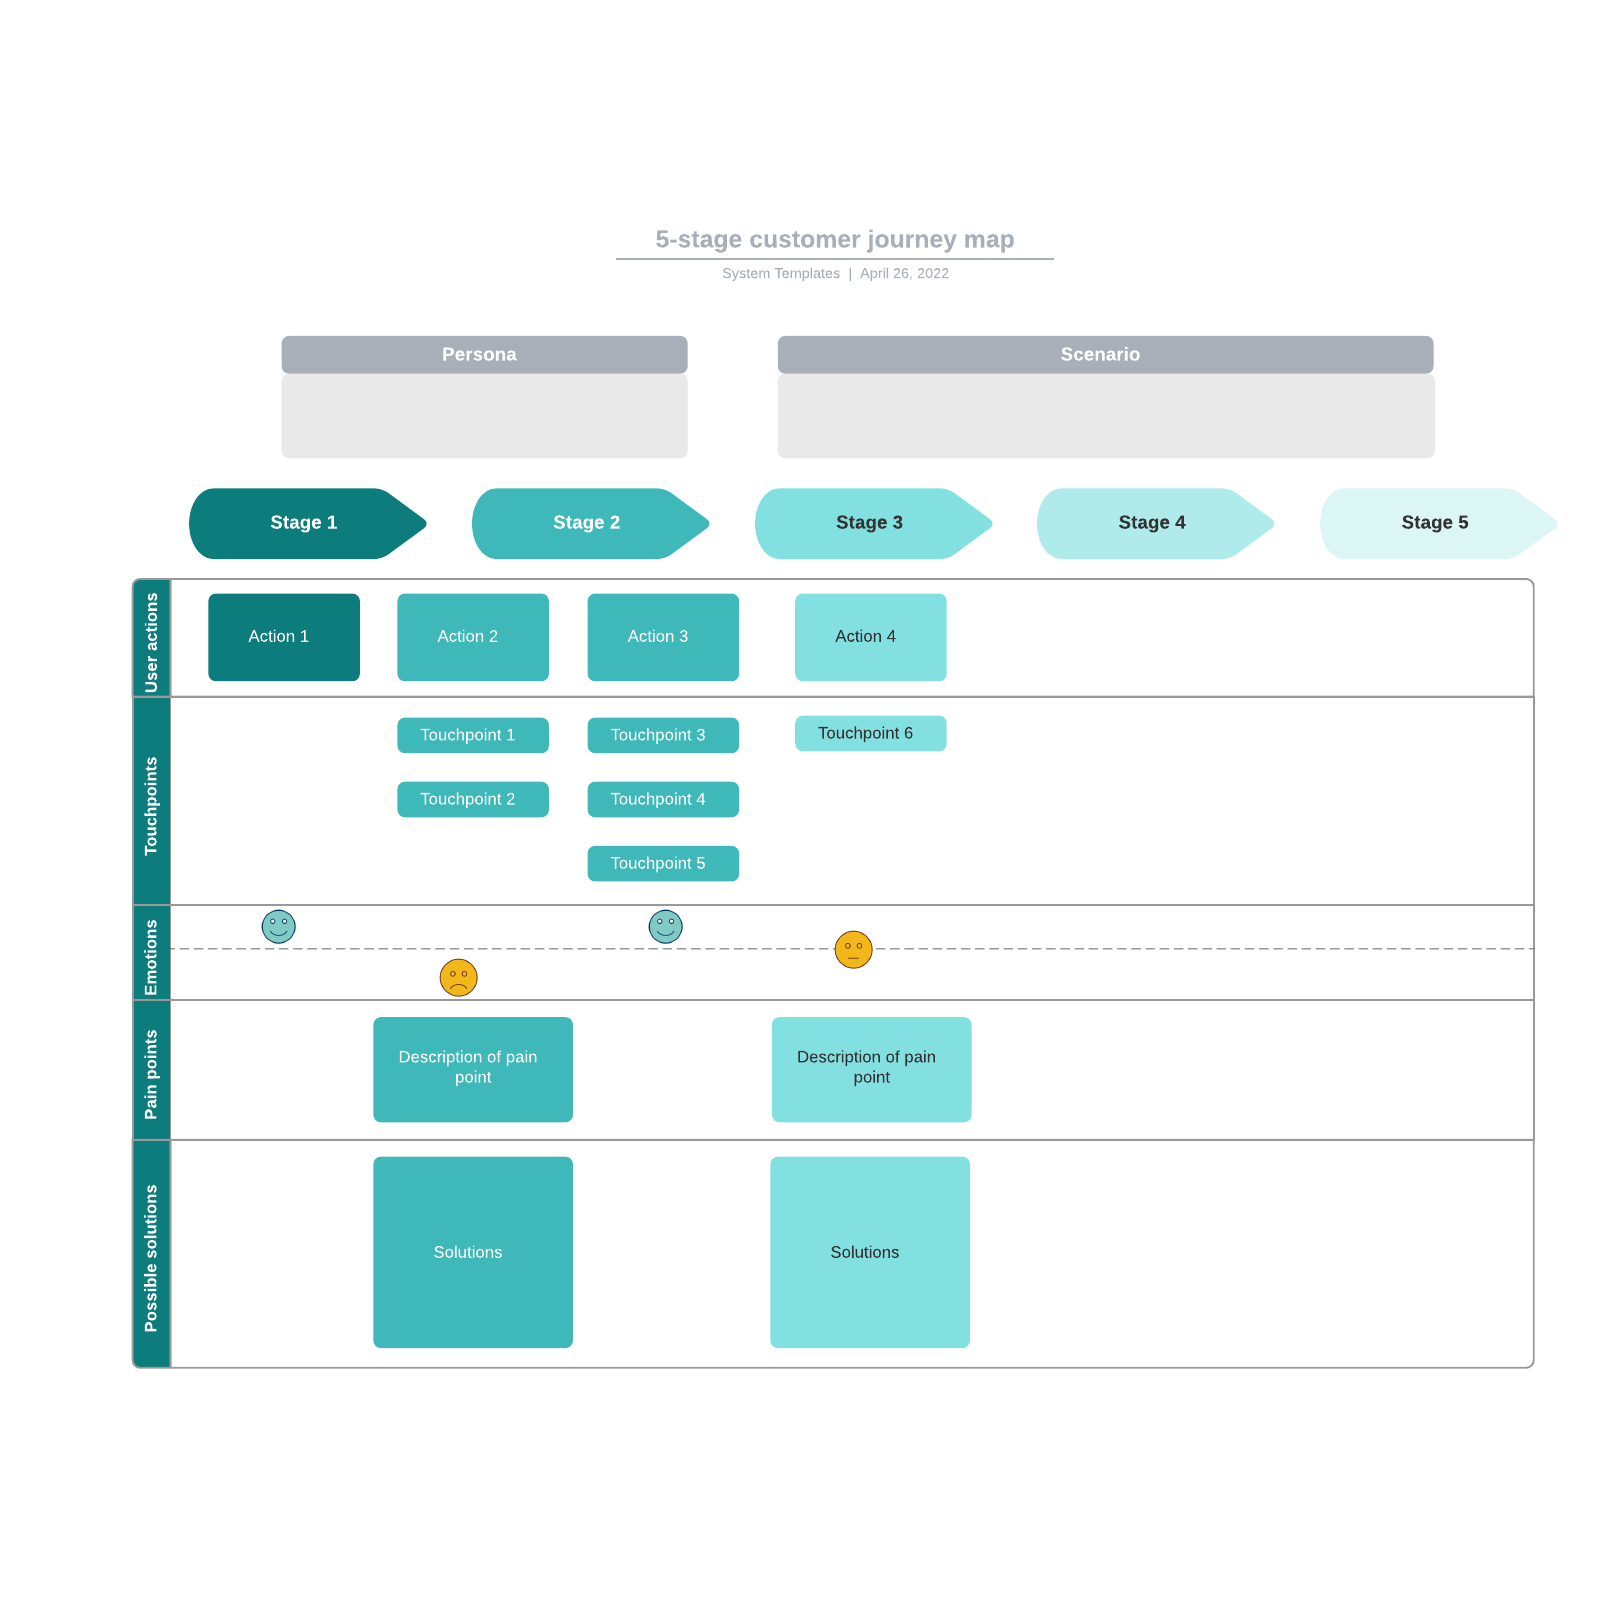 5-stage customer journey map